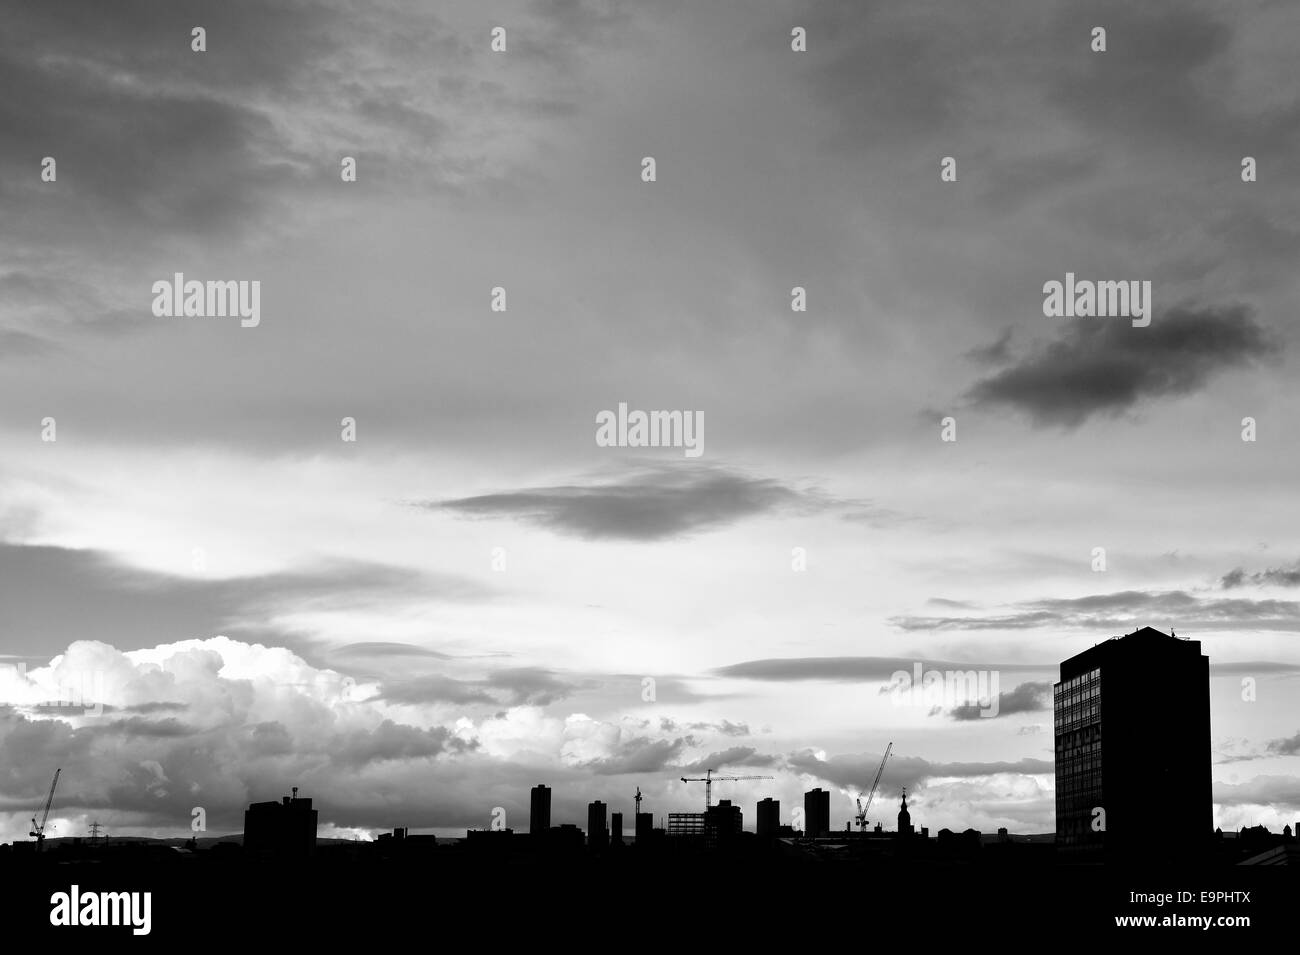 Black and white silhouette of Glasgow city centre - Stock Image